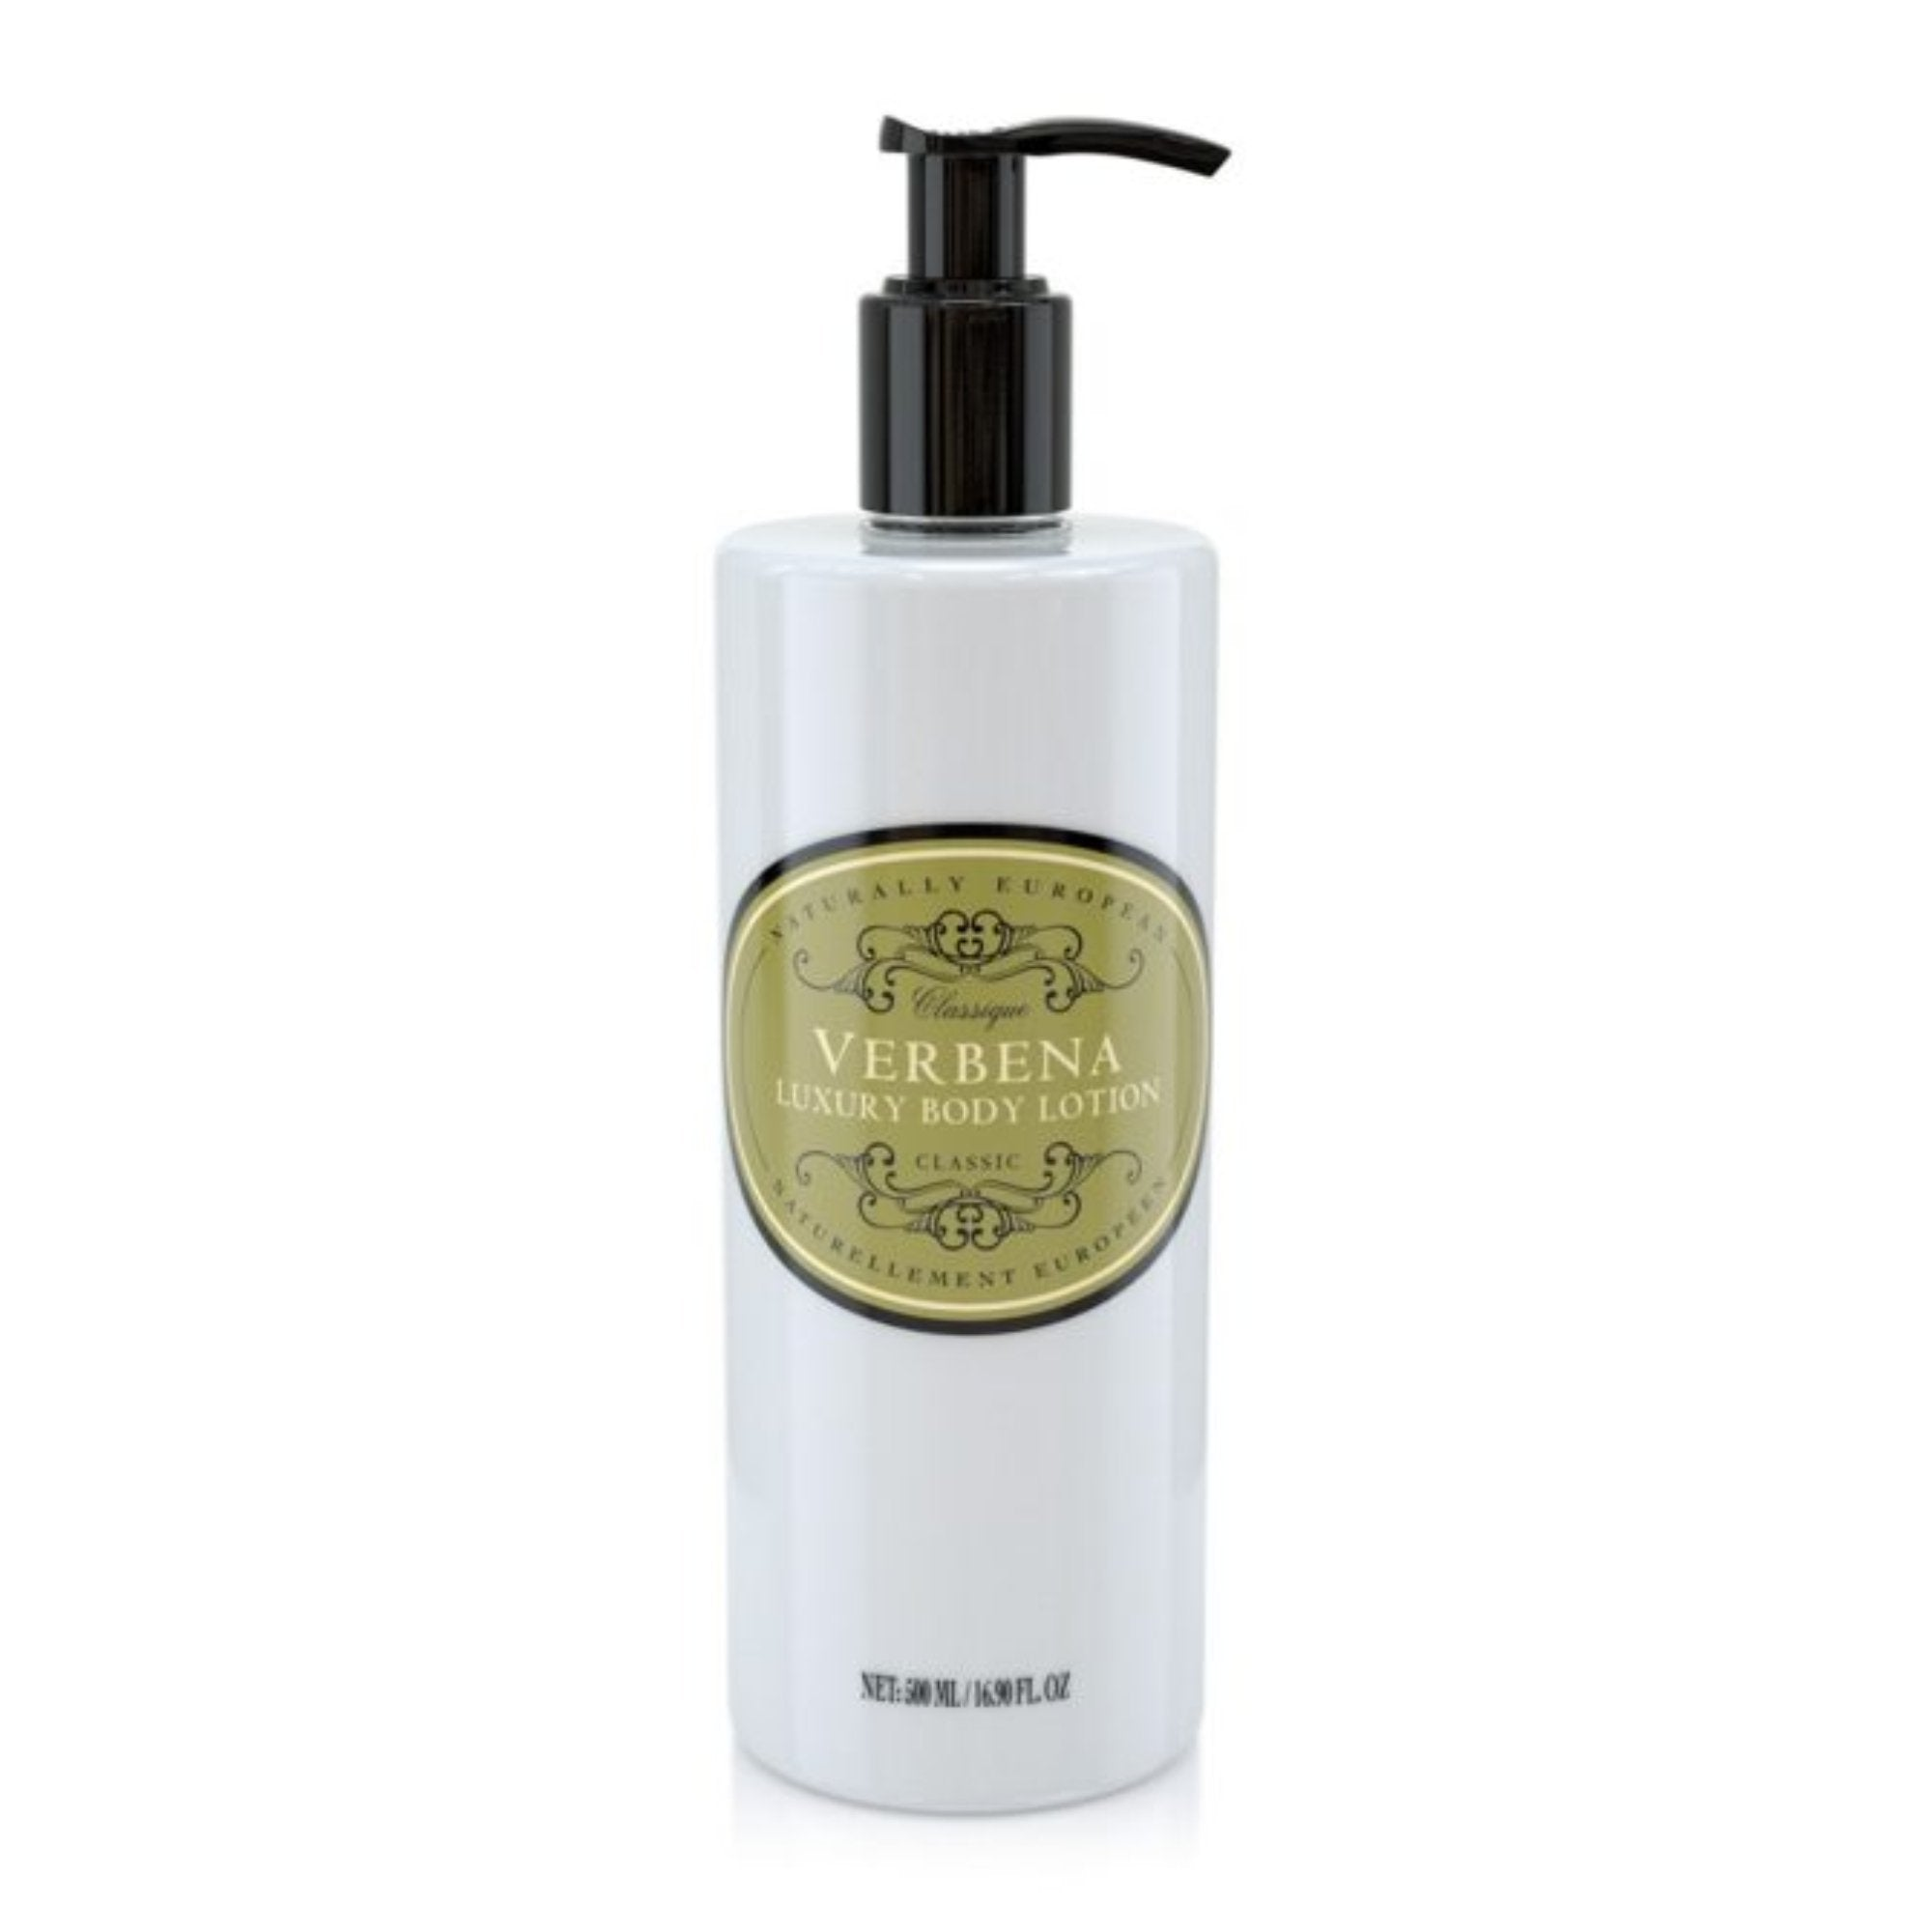 Naturally European Body Lotion